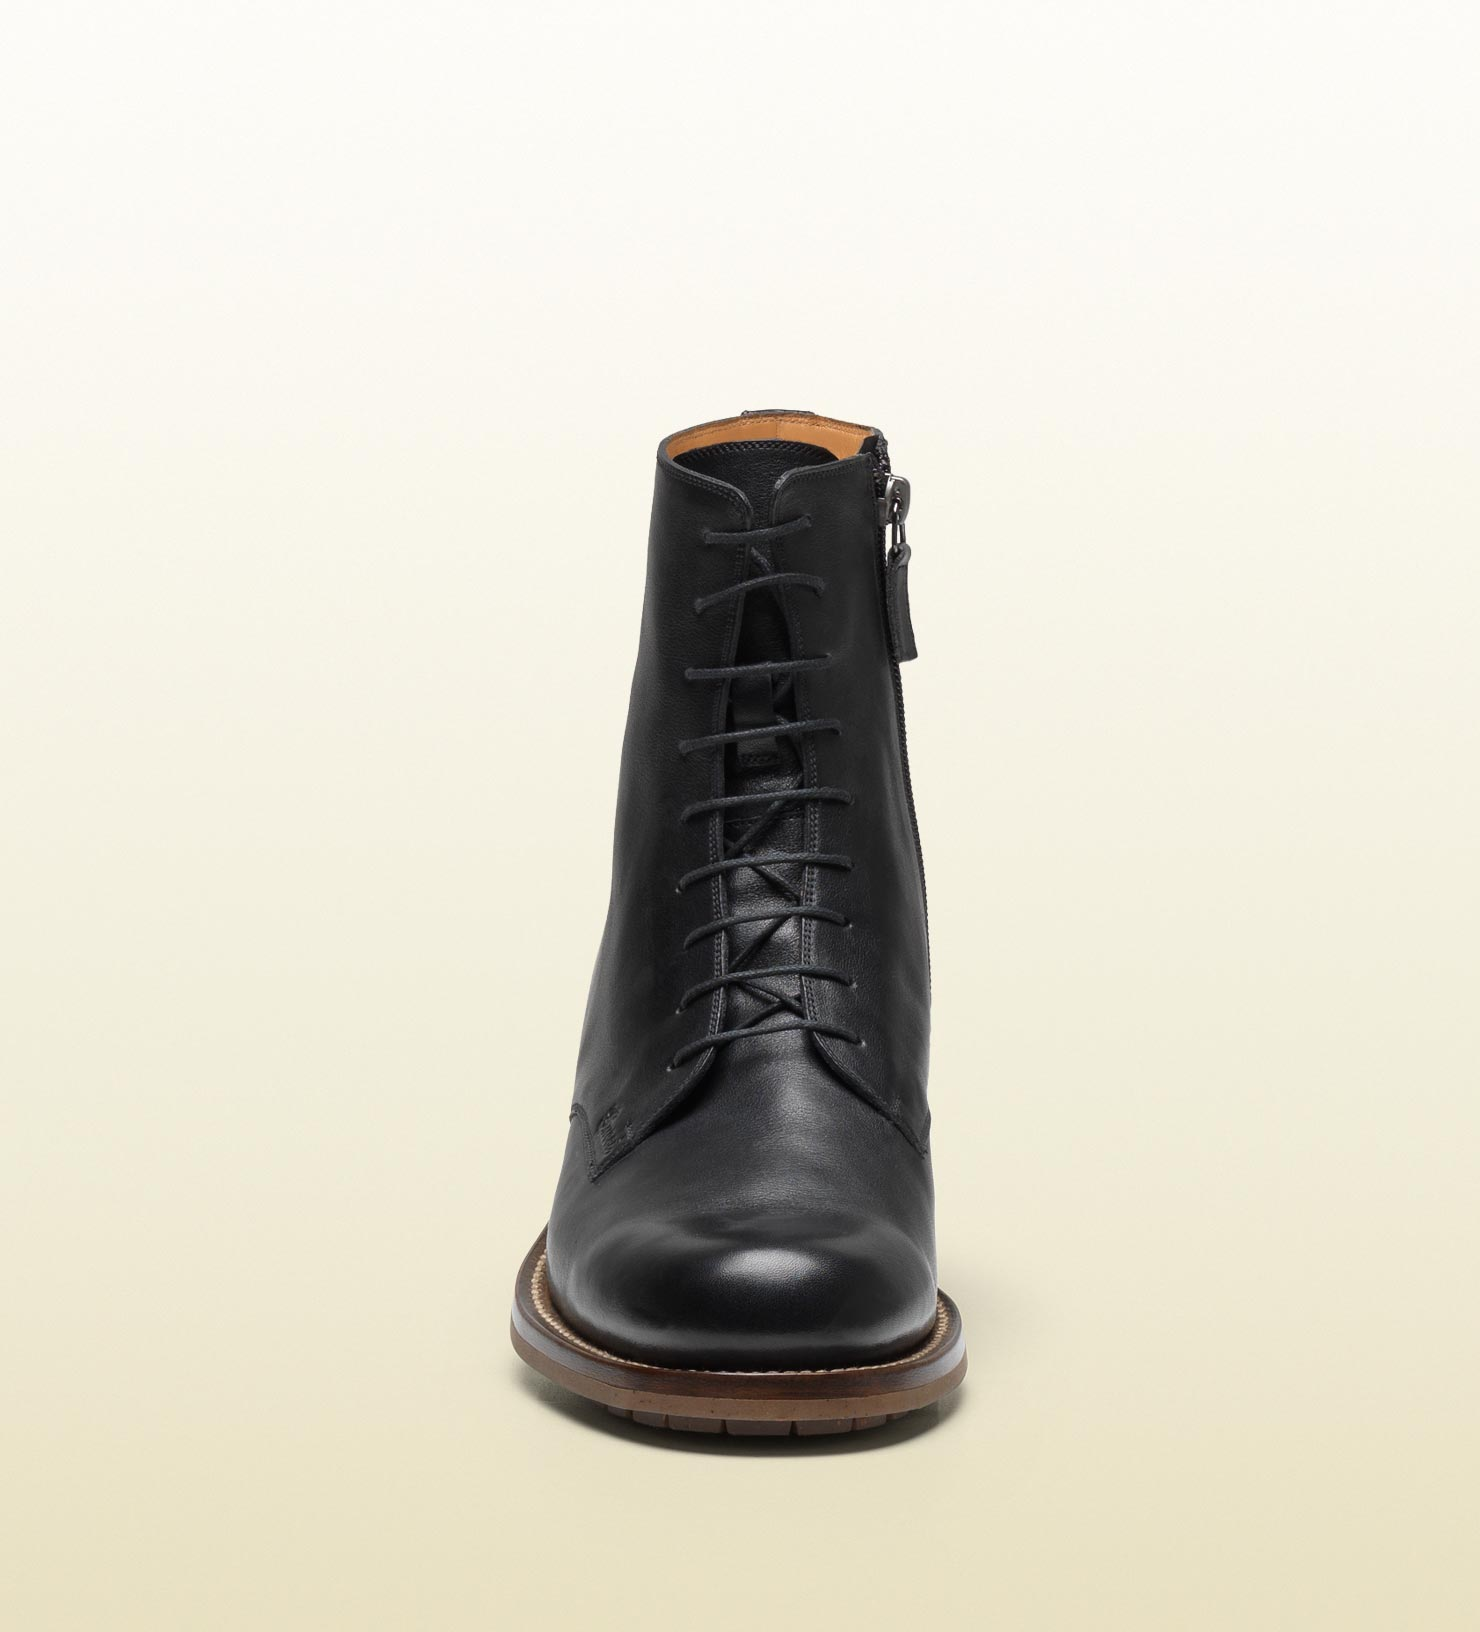 Gucci Laceup Military Boot in Black for